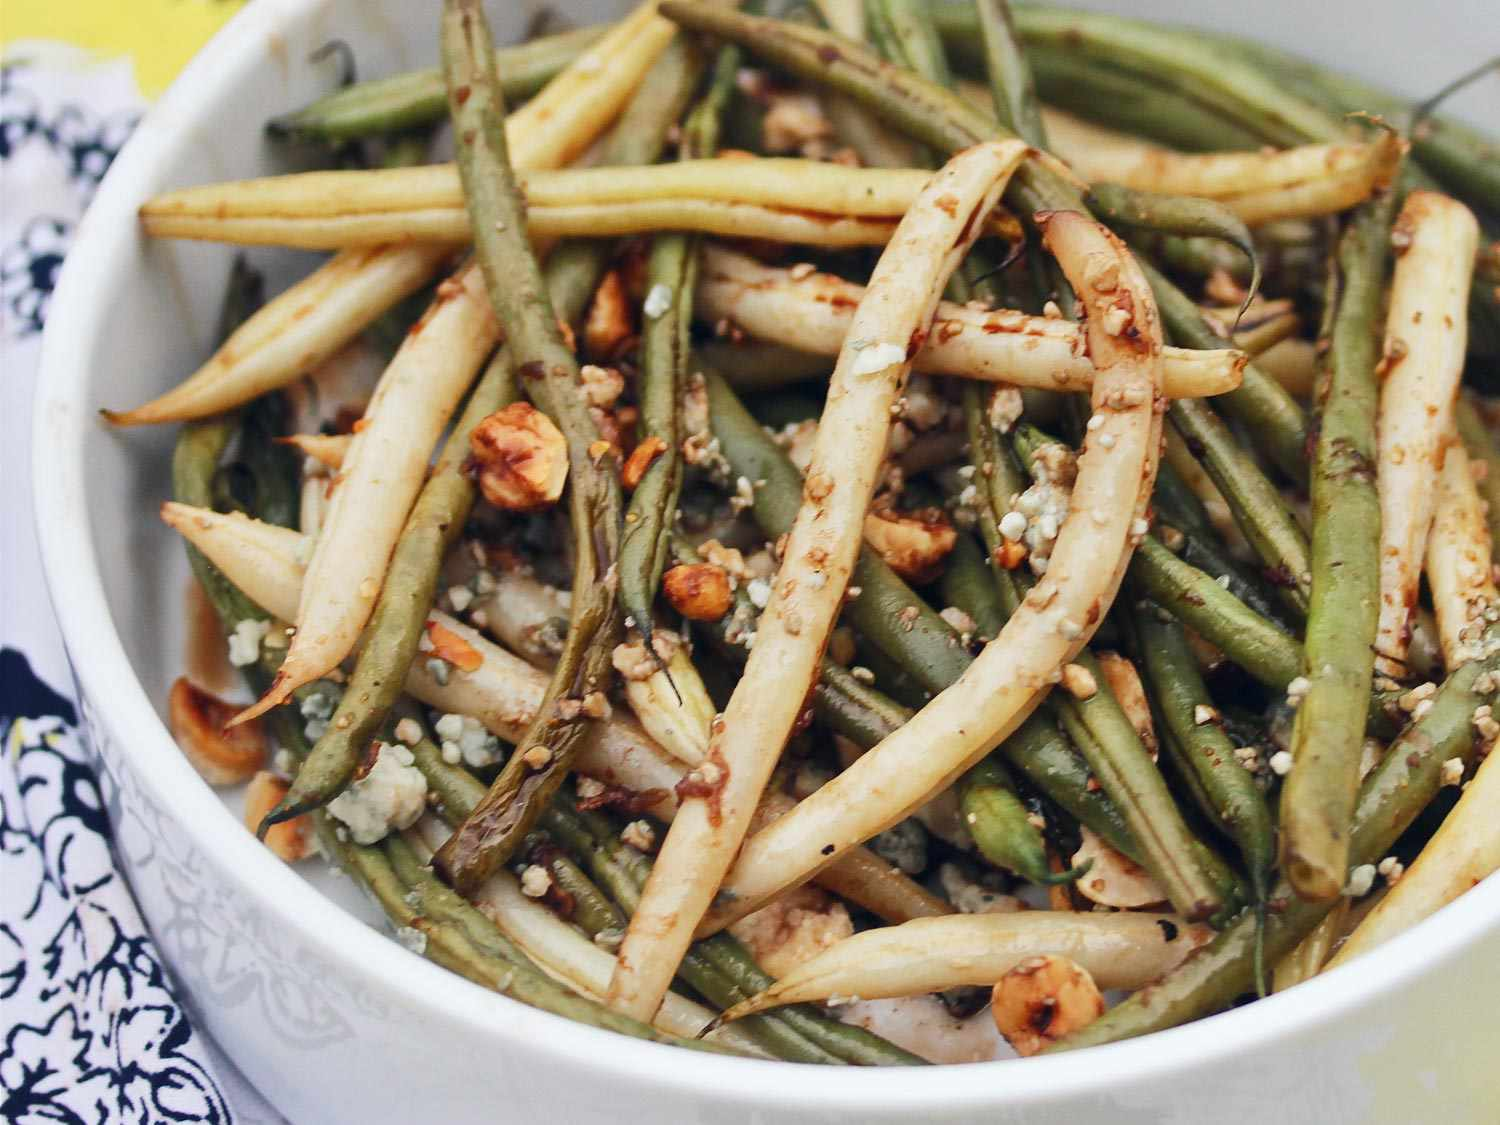 120413-279295-Serious-Eats-Hearty-Salads-Roasted-Beans-Blue-Cheese-Hazelnuts-edit.jpg